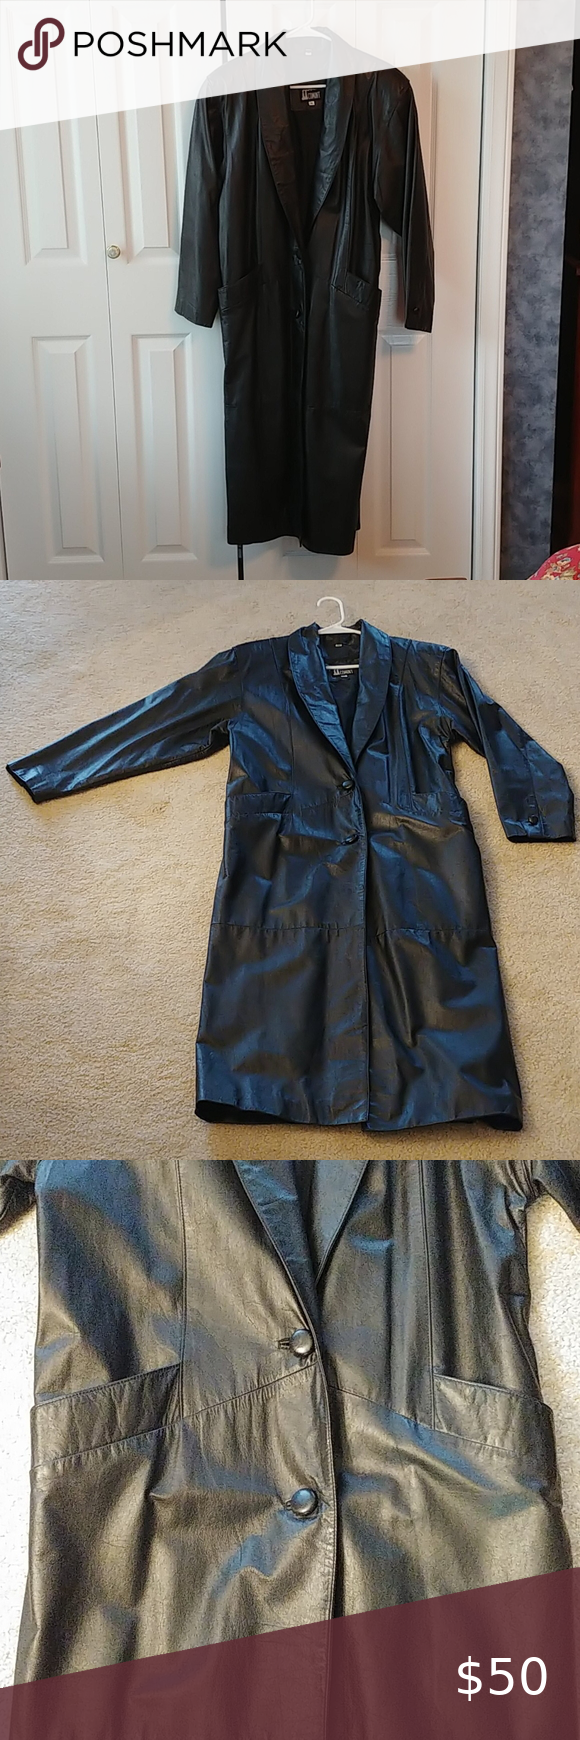 Comint Black Leather Trench Coat Leather Trench Coat Clothes Design Trench Coat [ 1740 x 580 Pixel ]